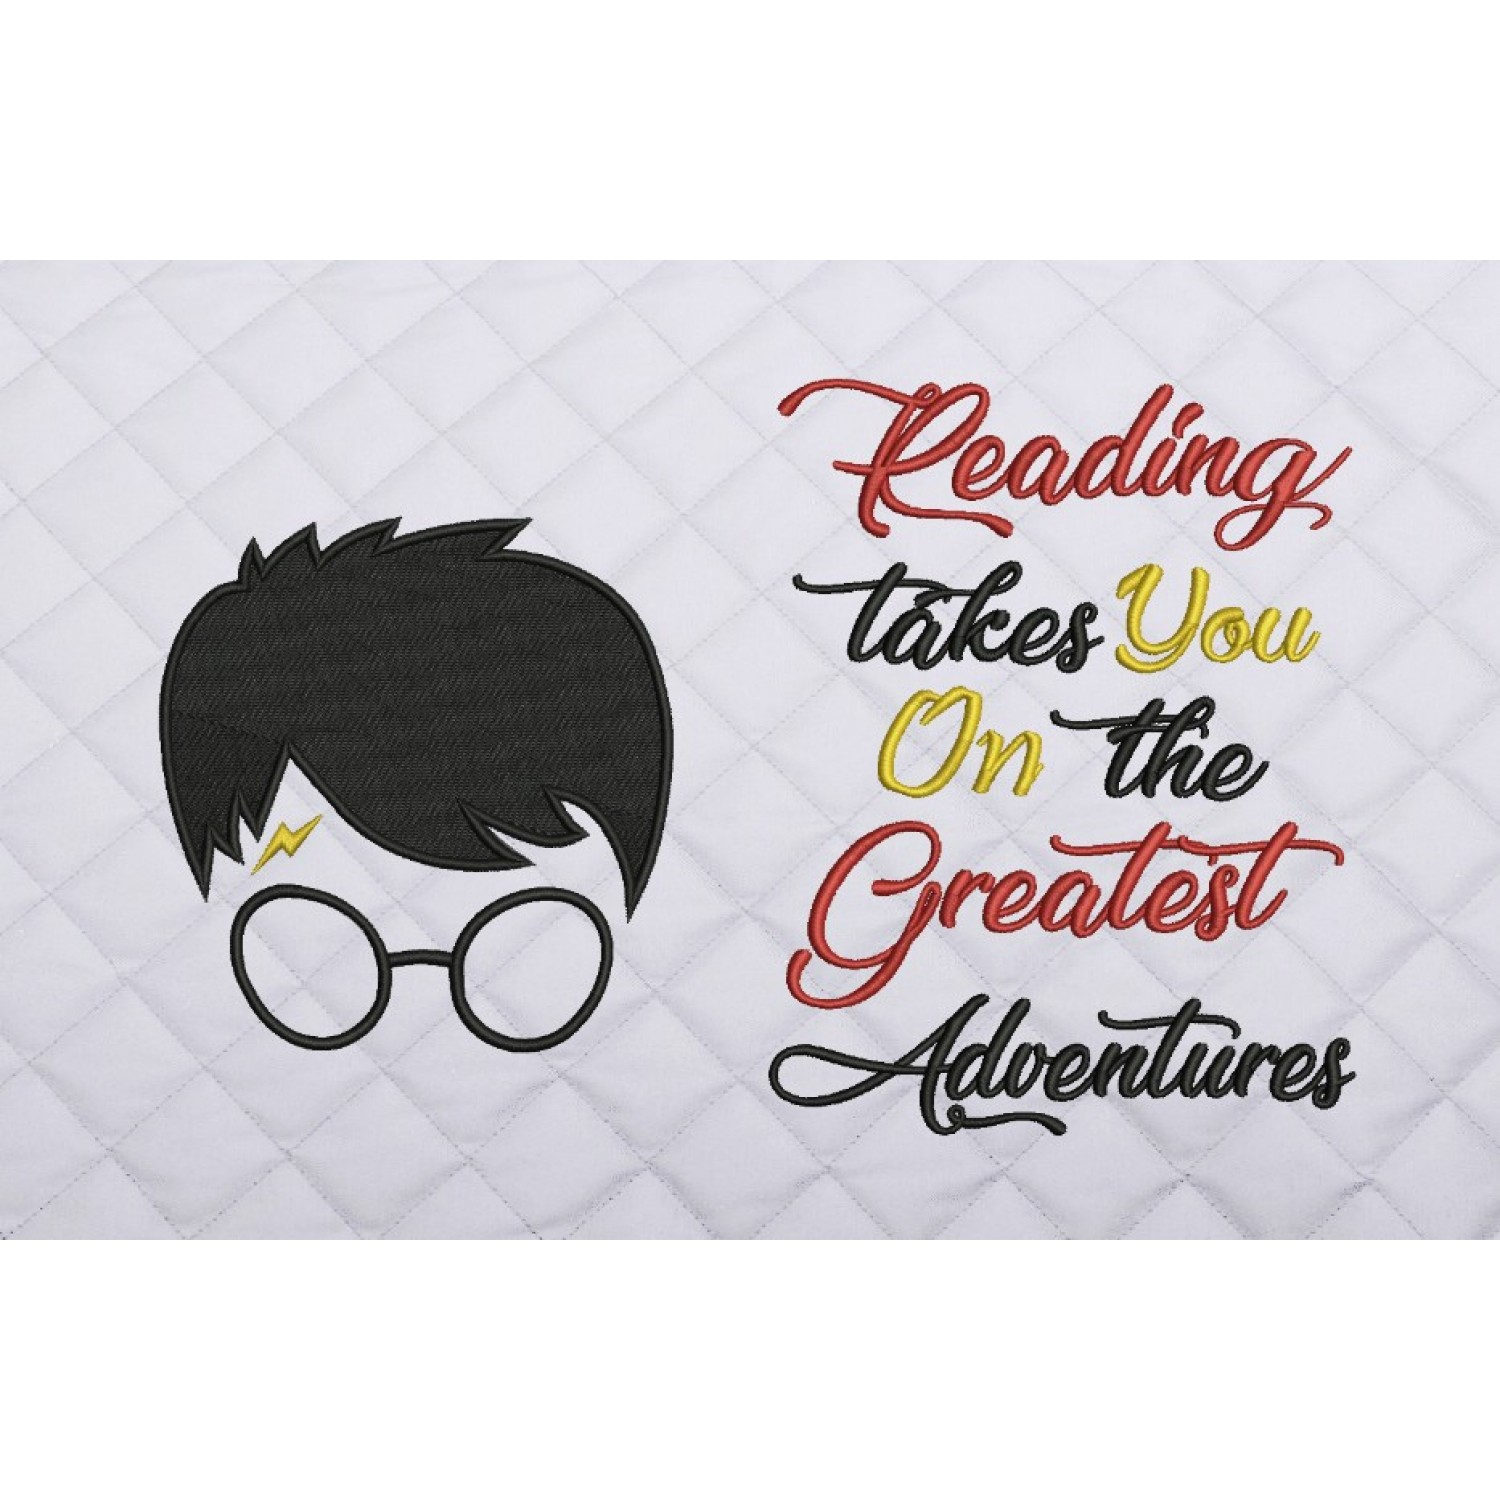 Harry potter face embroidery reading takes you